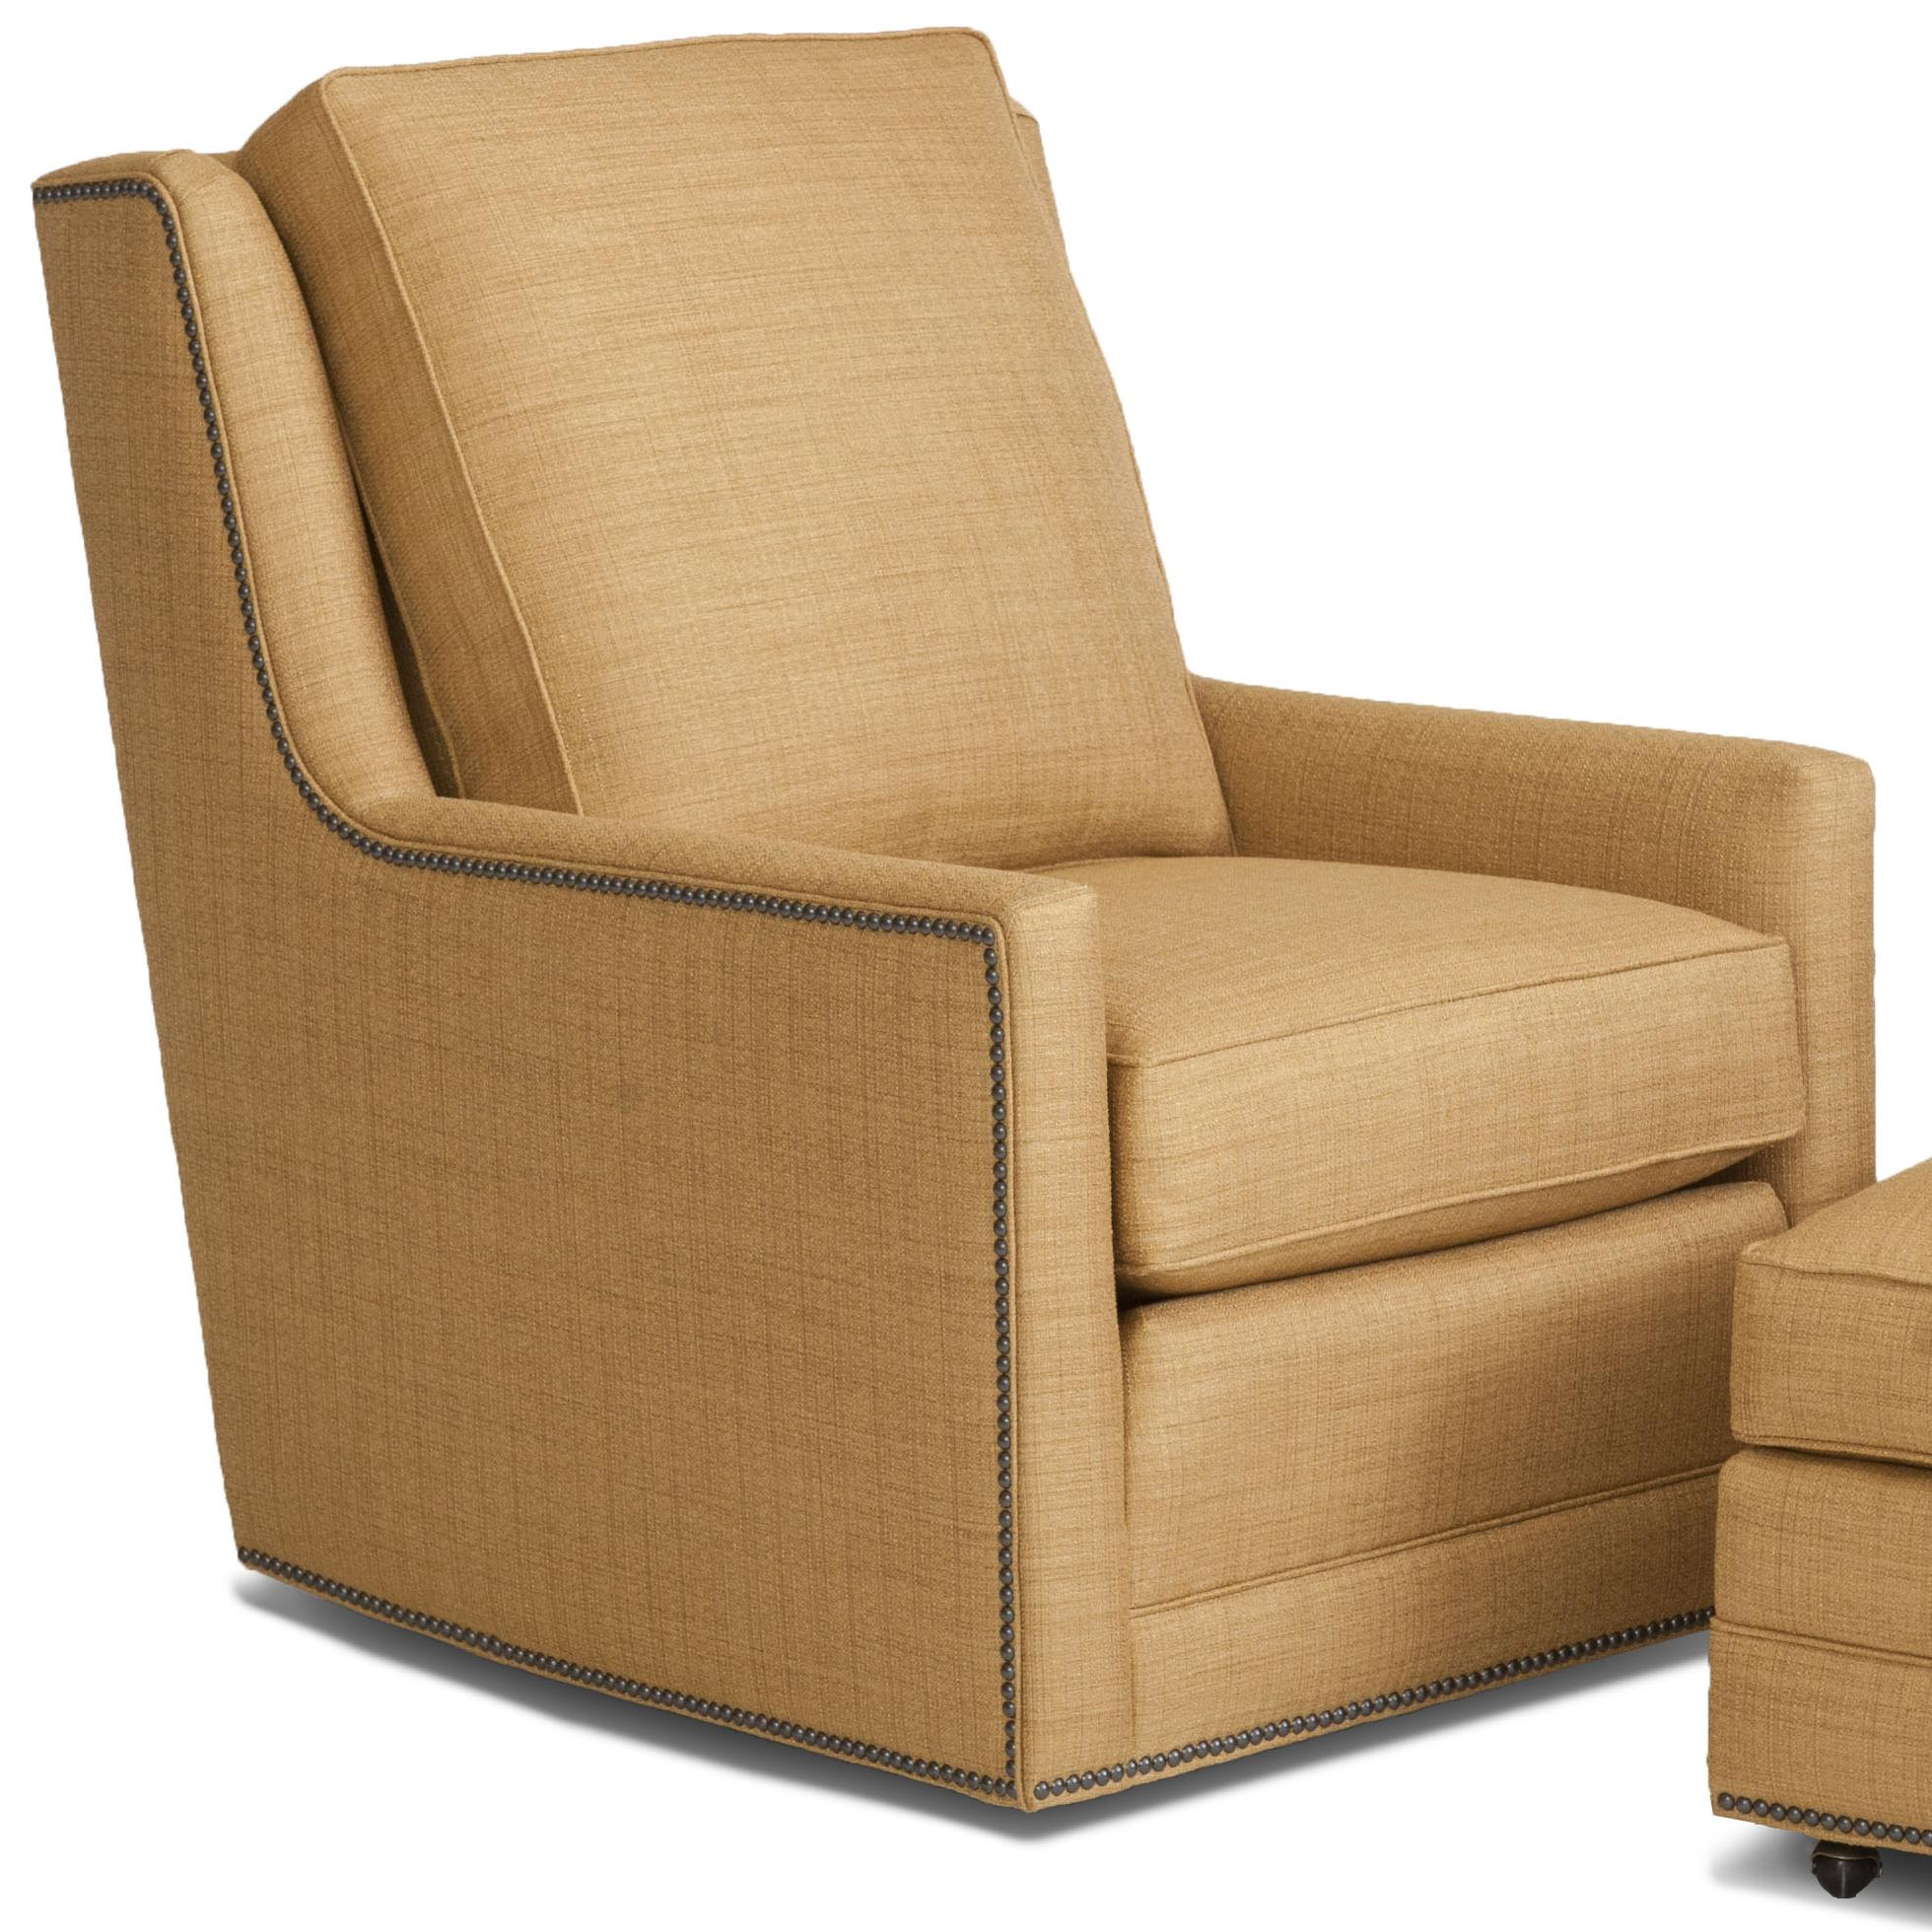 Accent Chairs and Ottomans SB Swivel Chair by Smith Brothers at Sprintz Furniture